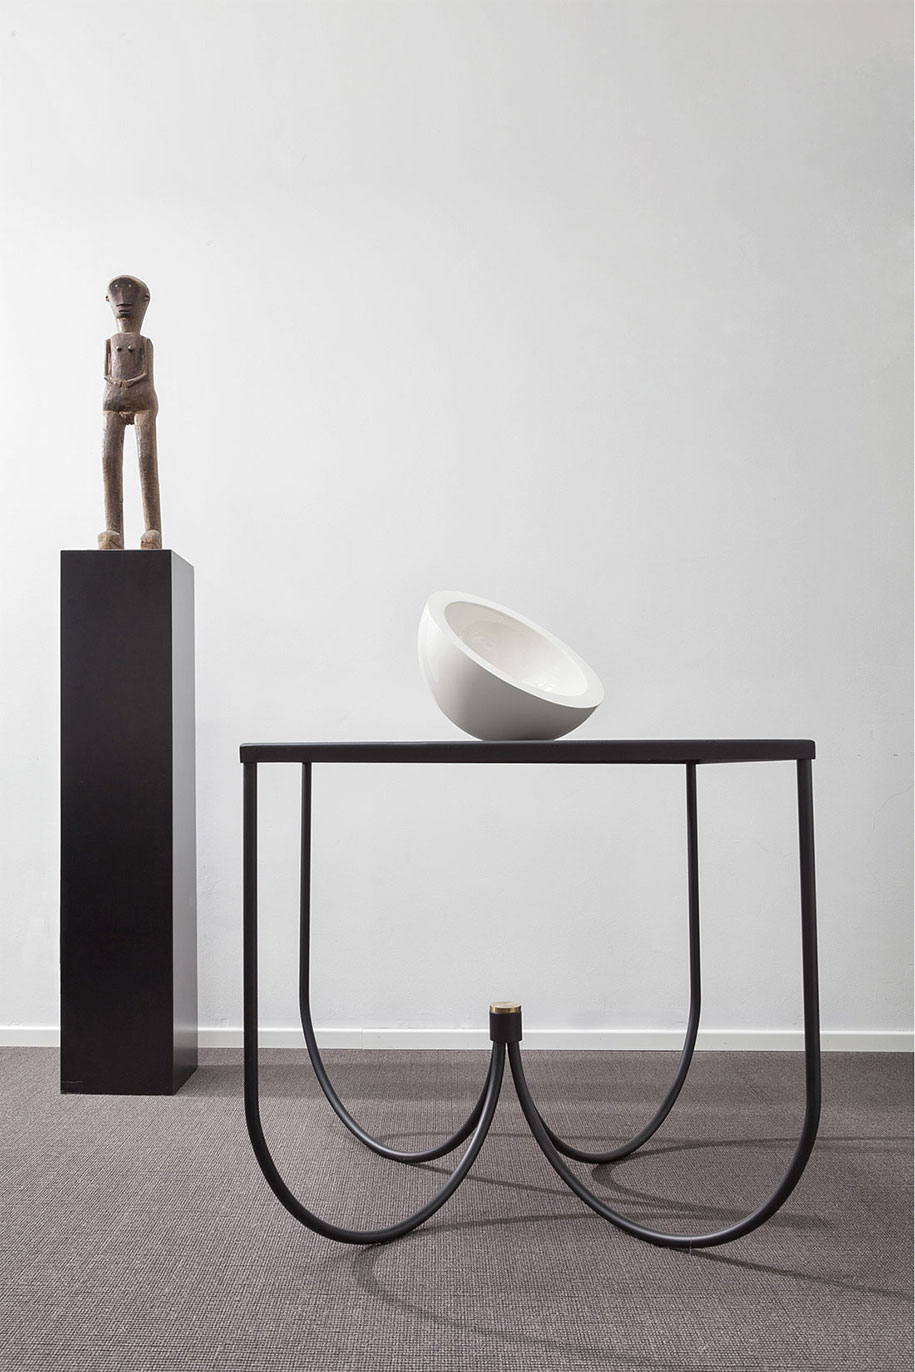 CENTRO-table_design-by-Omri-Revesz-+-Damian-Tatangelo